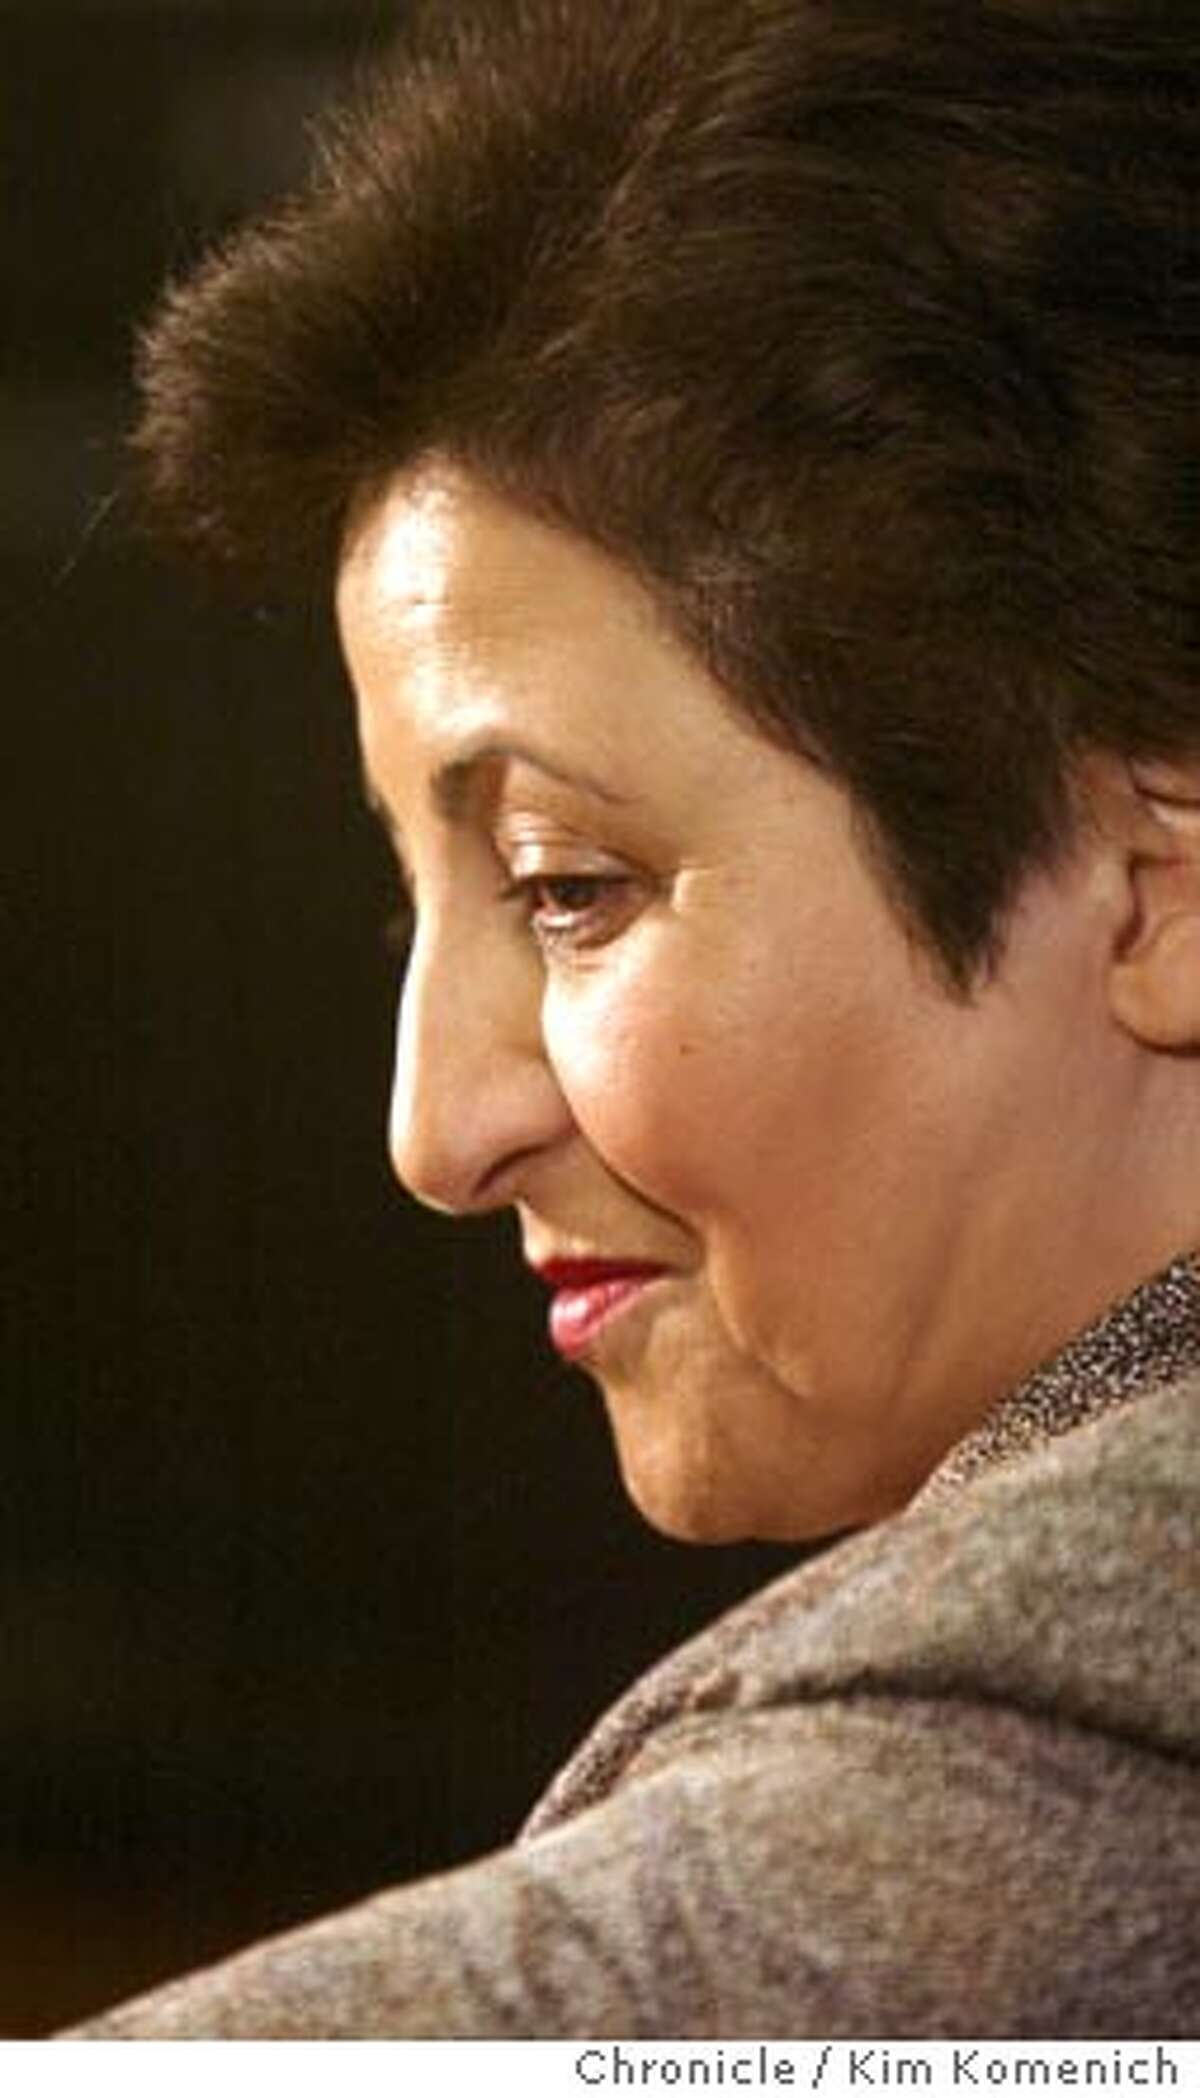 Iranian human rights lawyer Shirin Ebadi, recipient of the 2003 Nobel Peace Prize, holds a press conference at Stanford prior to an address at Stanford's Memorial Auditorium Photo by Kim Komenich in Stanford.